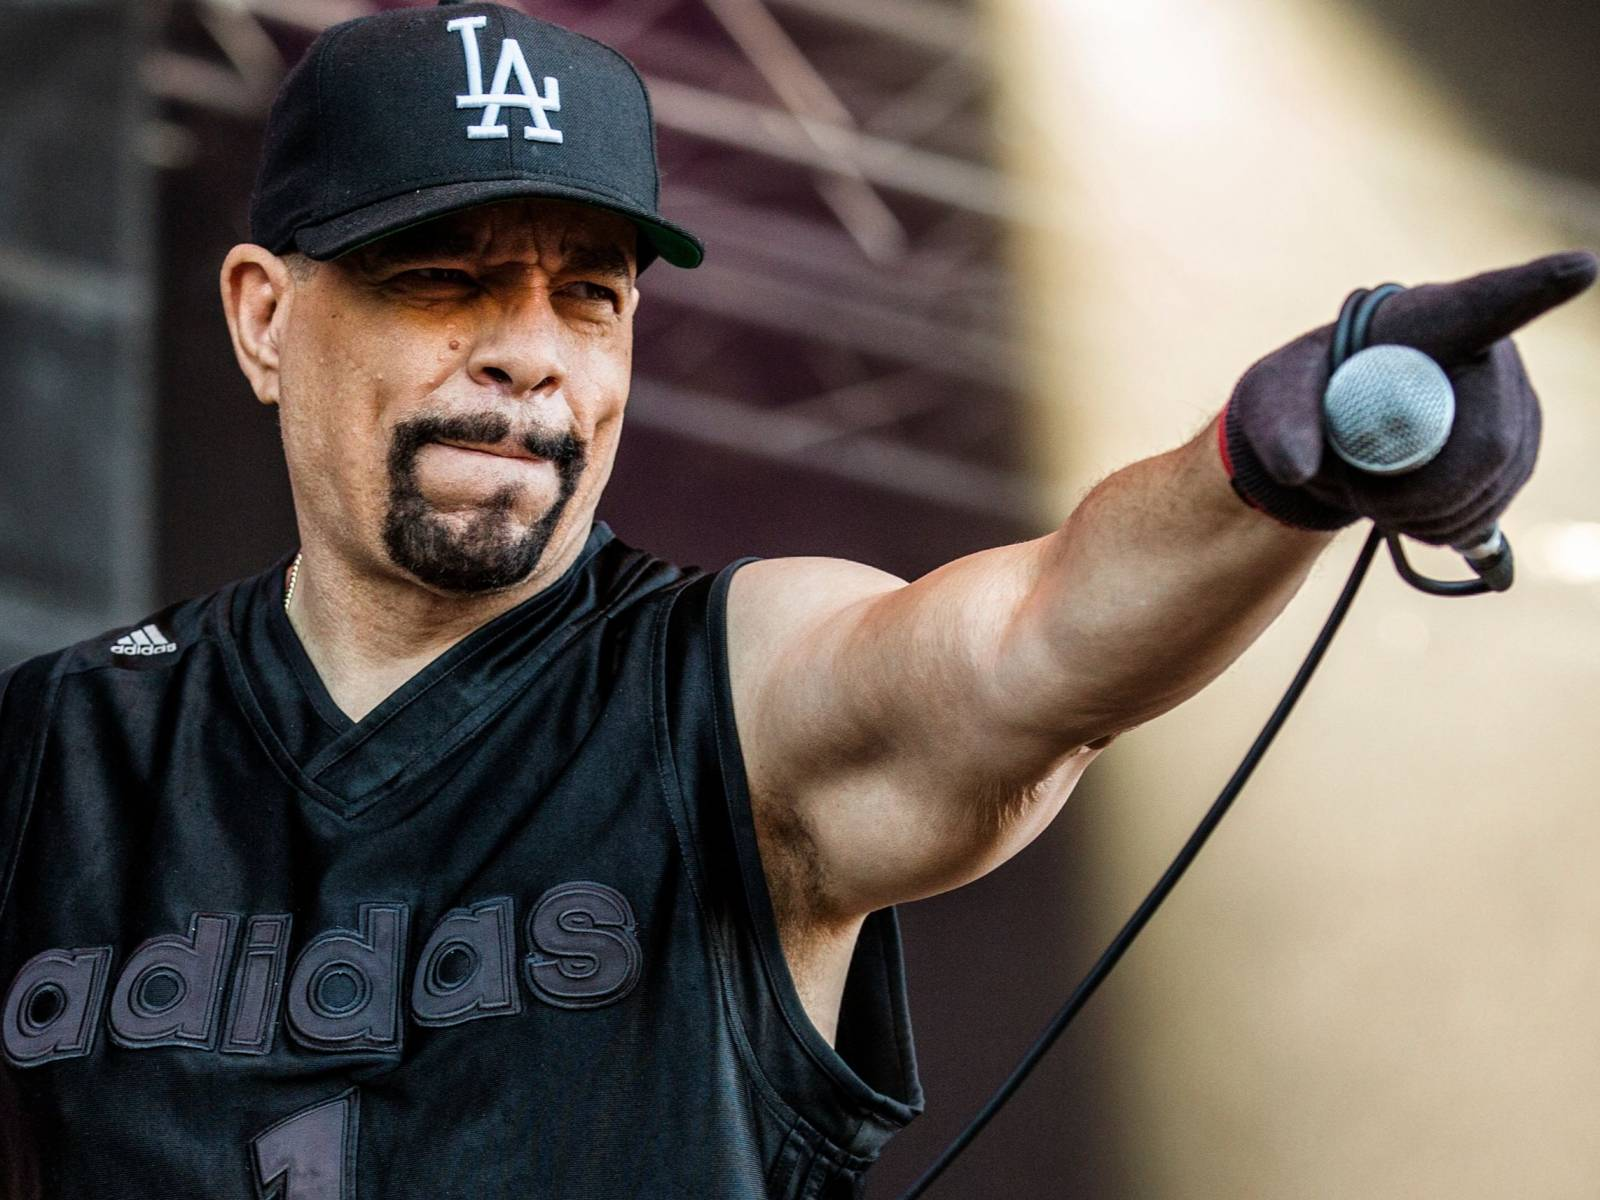 Ice-T Was Shocked To Learn 'Cunt' Was Offensive To Women: 'I Would've Used It Back In The Day'